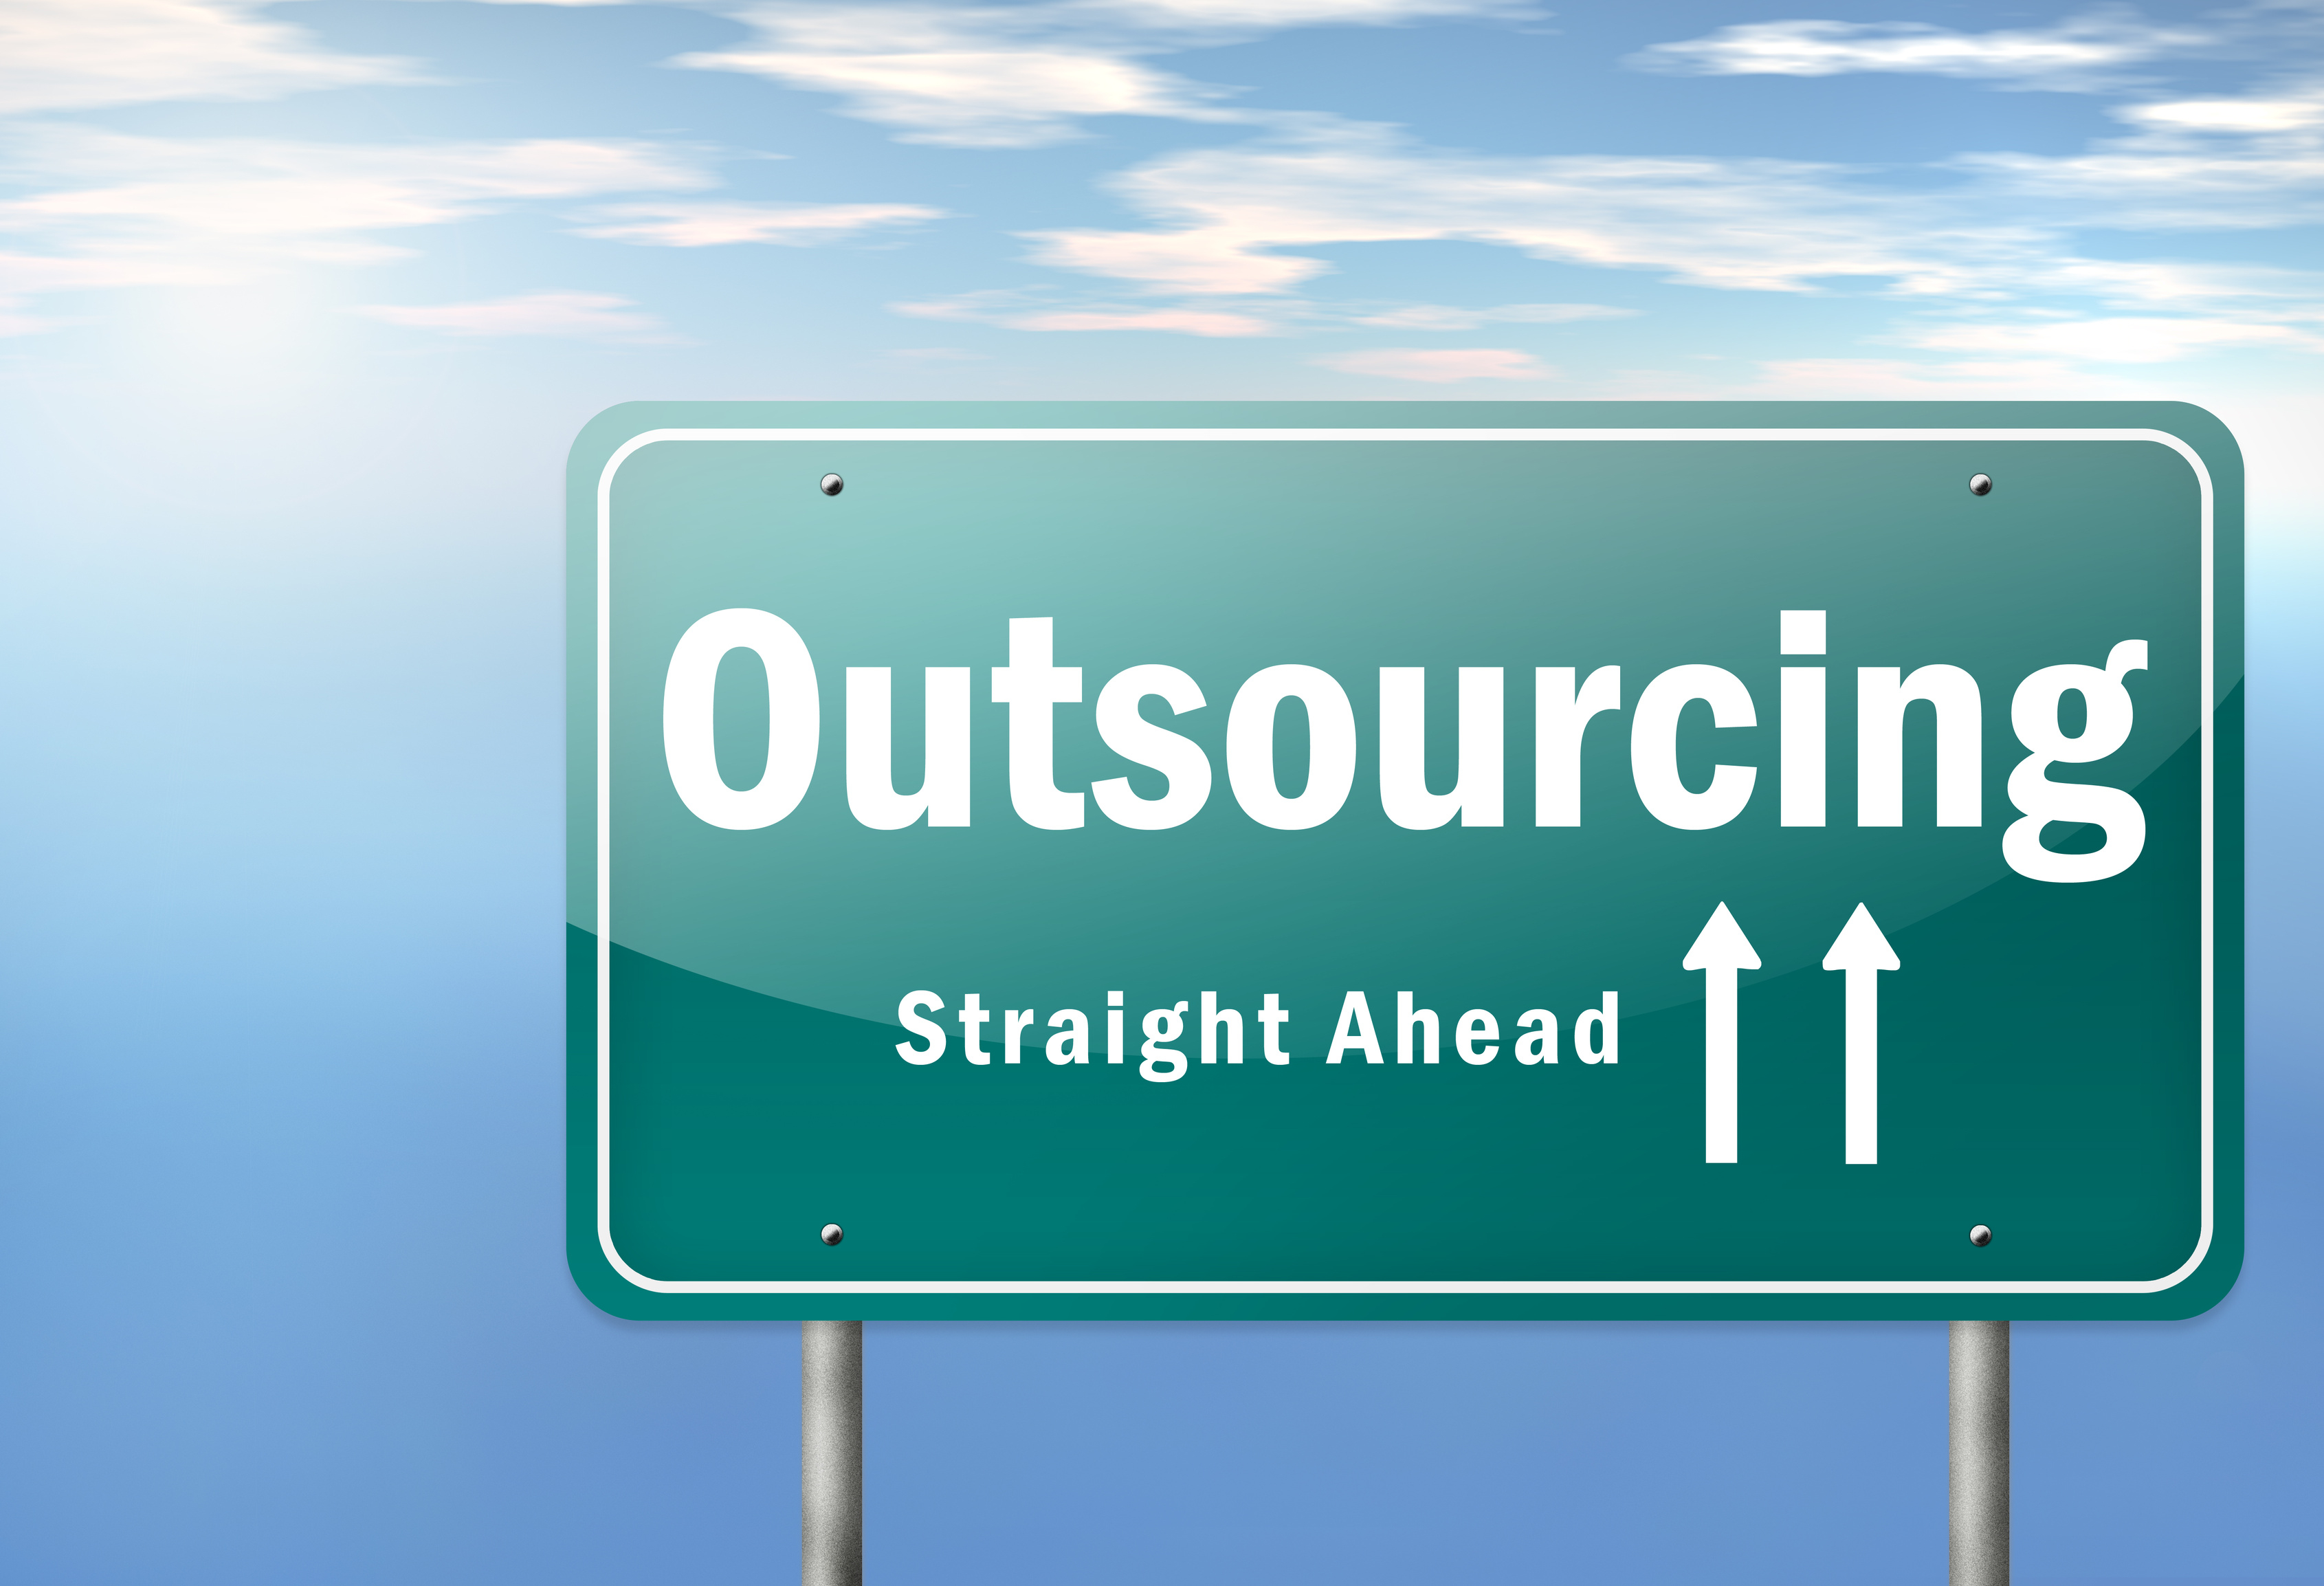 outsourcing at any cost Outsourcing is a practice used by different companies to reduce costs by  transferring portions of work to outside suppliers rather than  what is ' outsourcing.